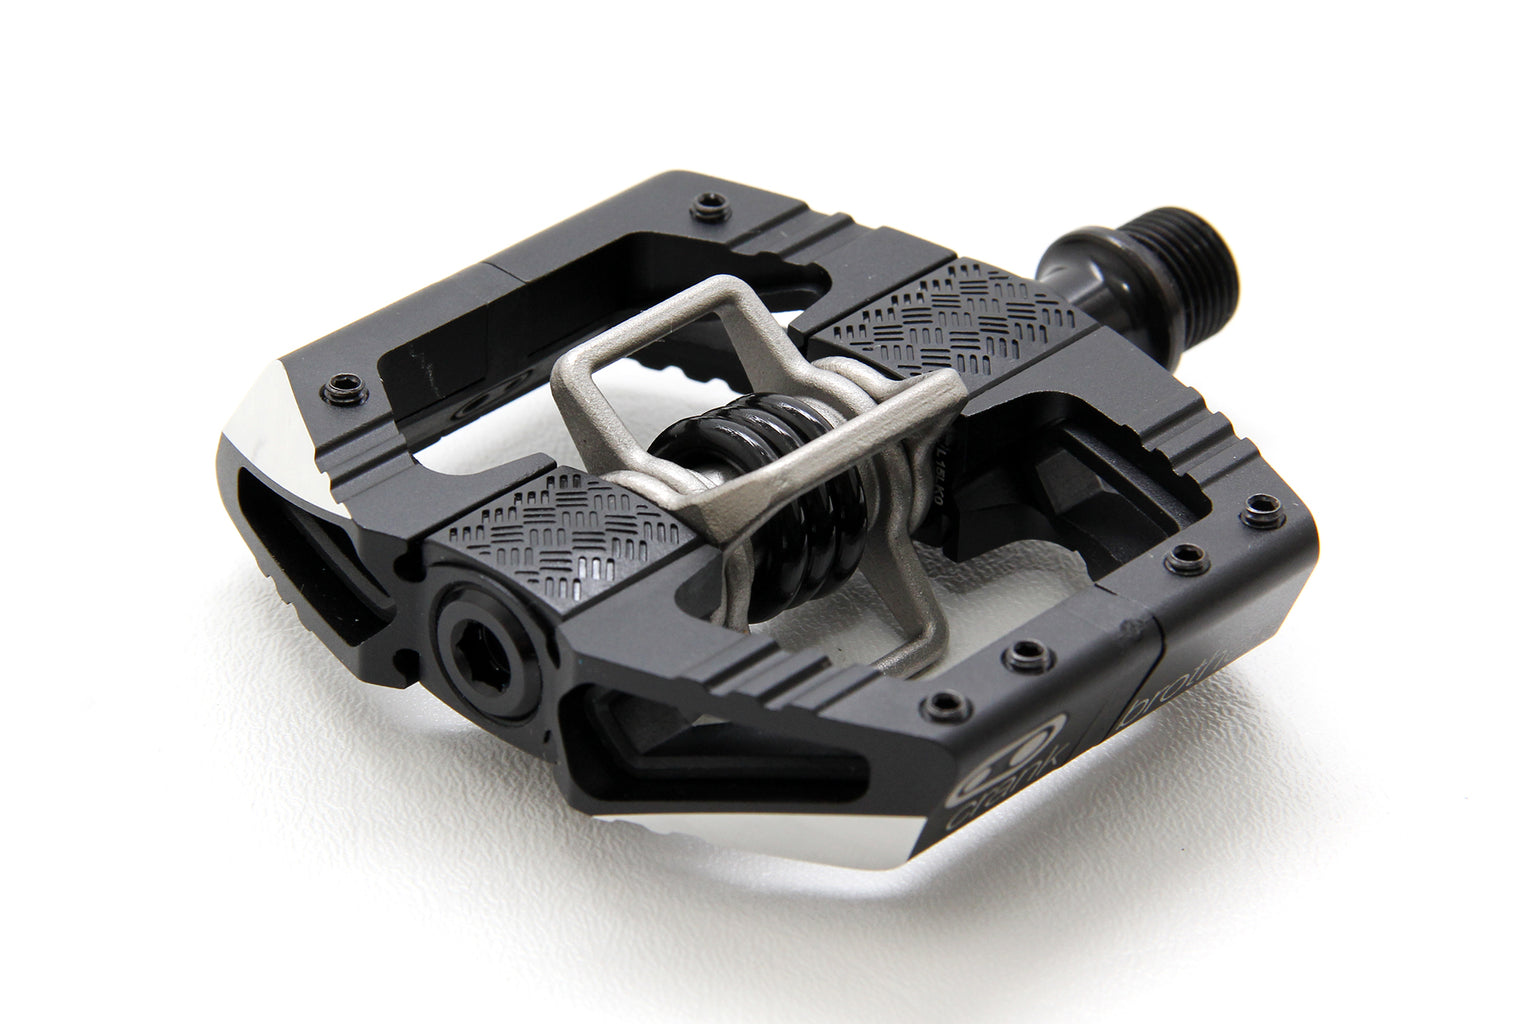 "Crank Brothers Mallet Enduro Pedals - Dual Sided Clipless with Platform, Aluminum, 9/16"", Black MPN: 15990 UPC: 641300159908 Pedals Mallet E Pedals"